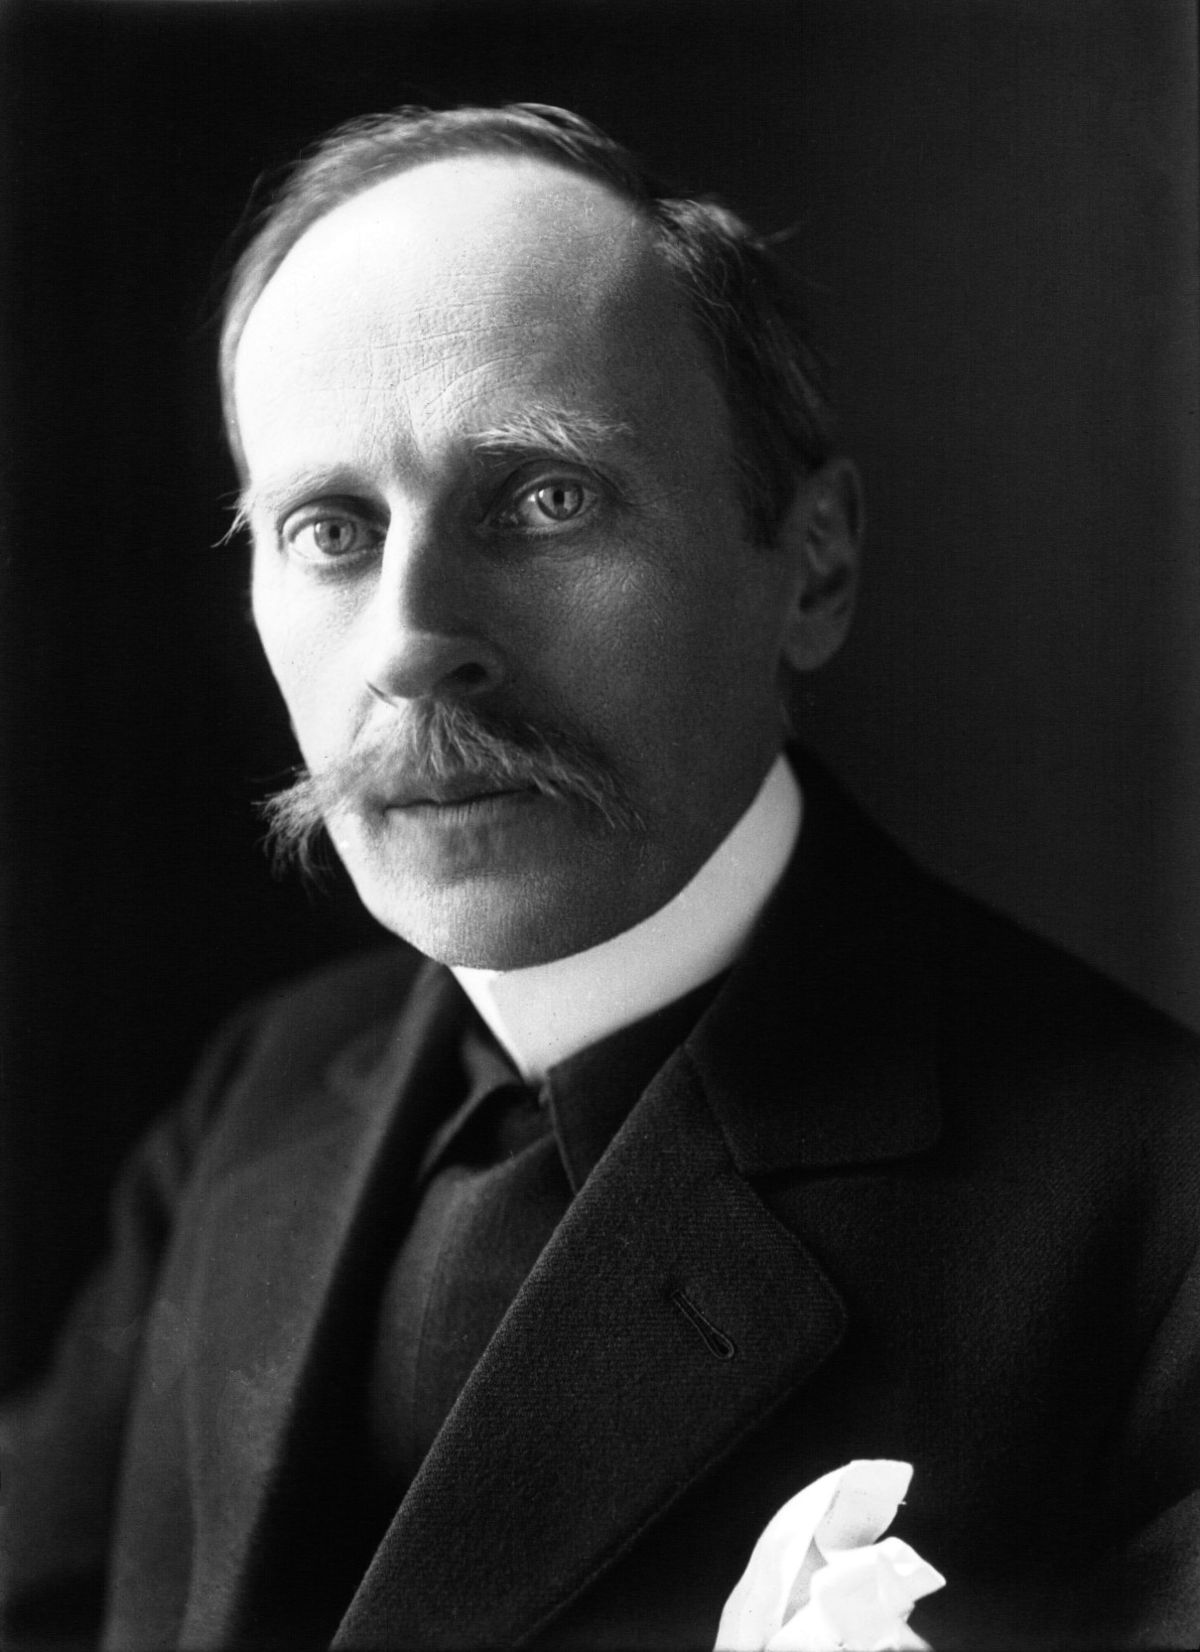 https://upload.wikimedia.org/wikipedia/commons/thumb/6/6a/Romain_Rolland-1914.jpg/1200px-Romain_Rolland-1914.jpg